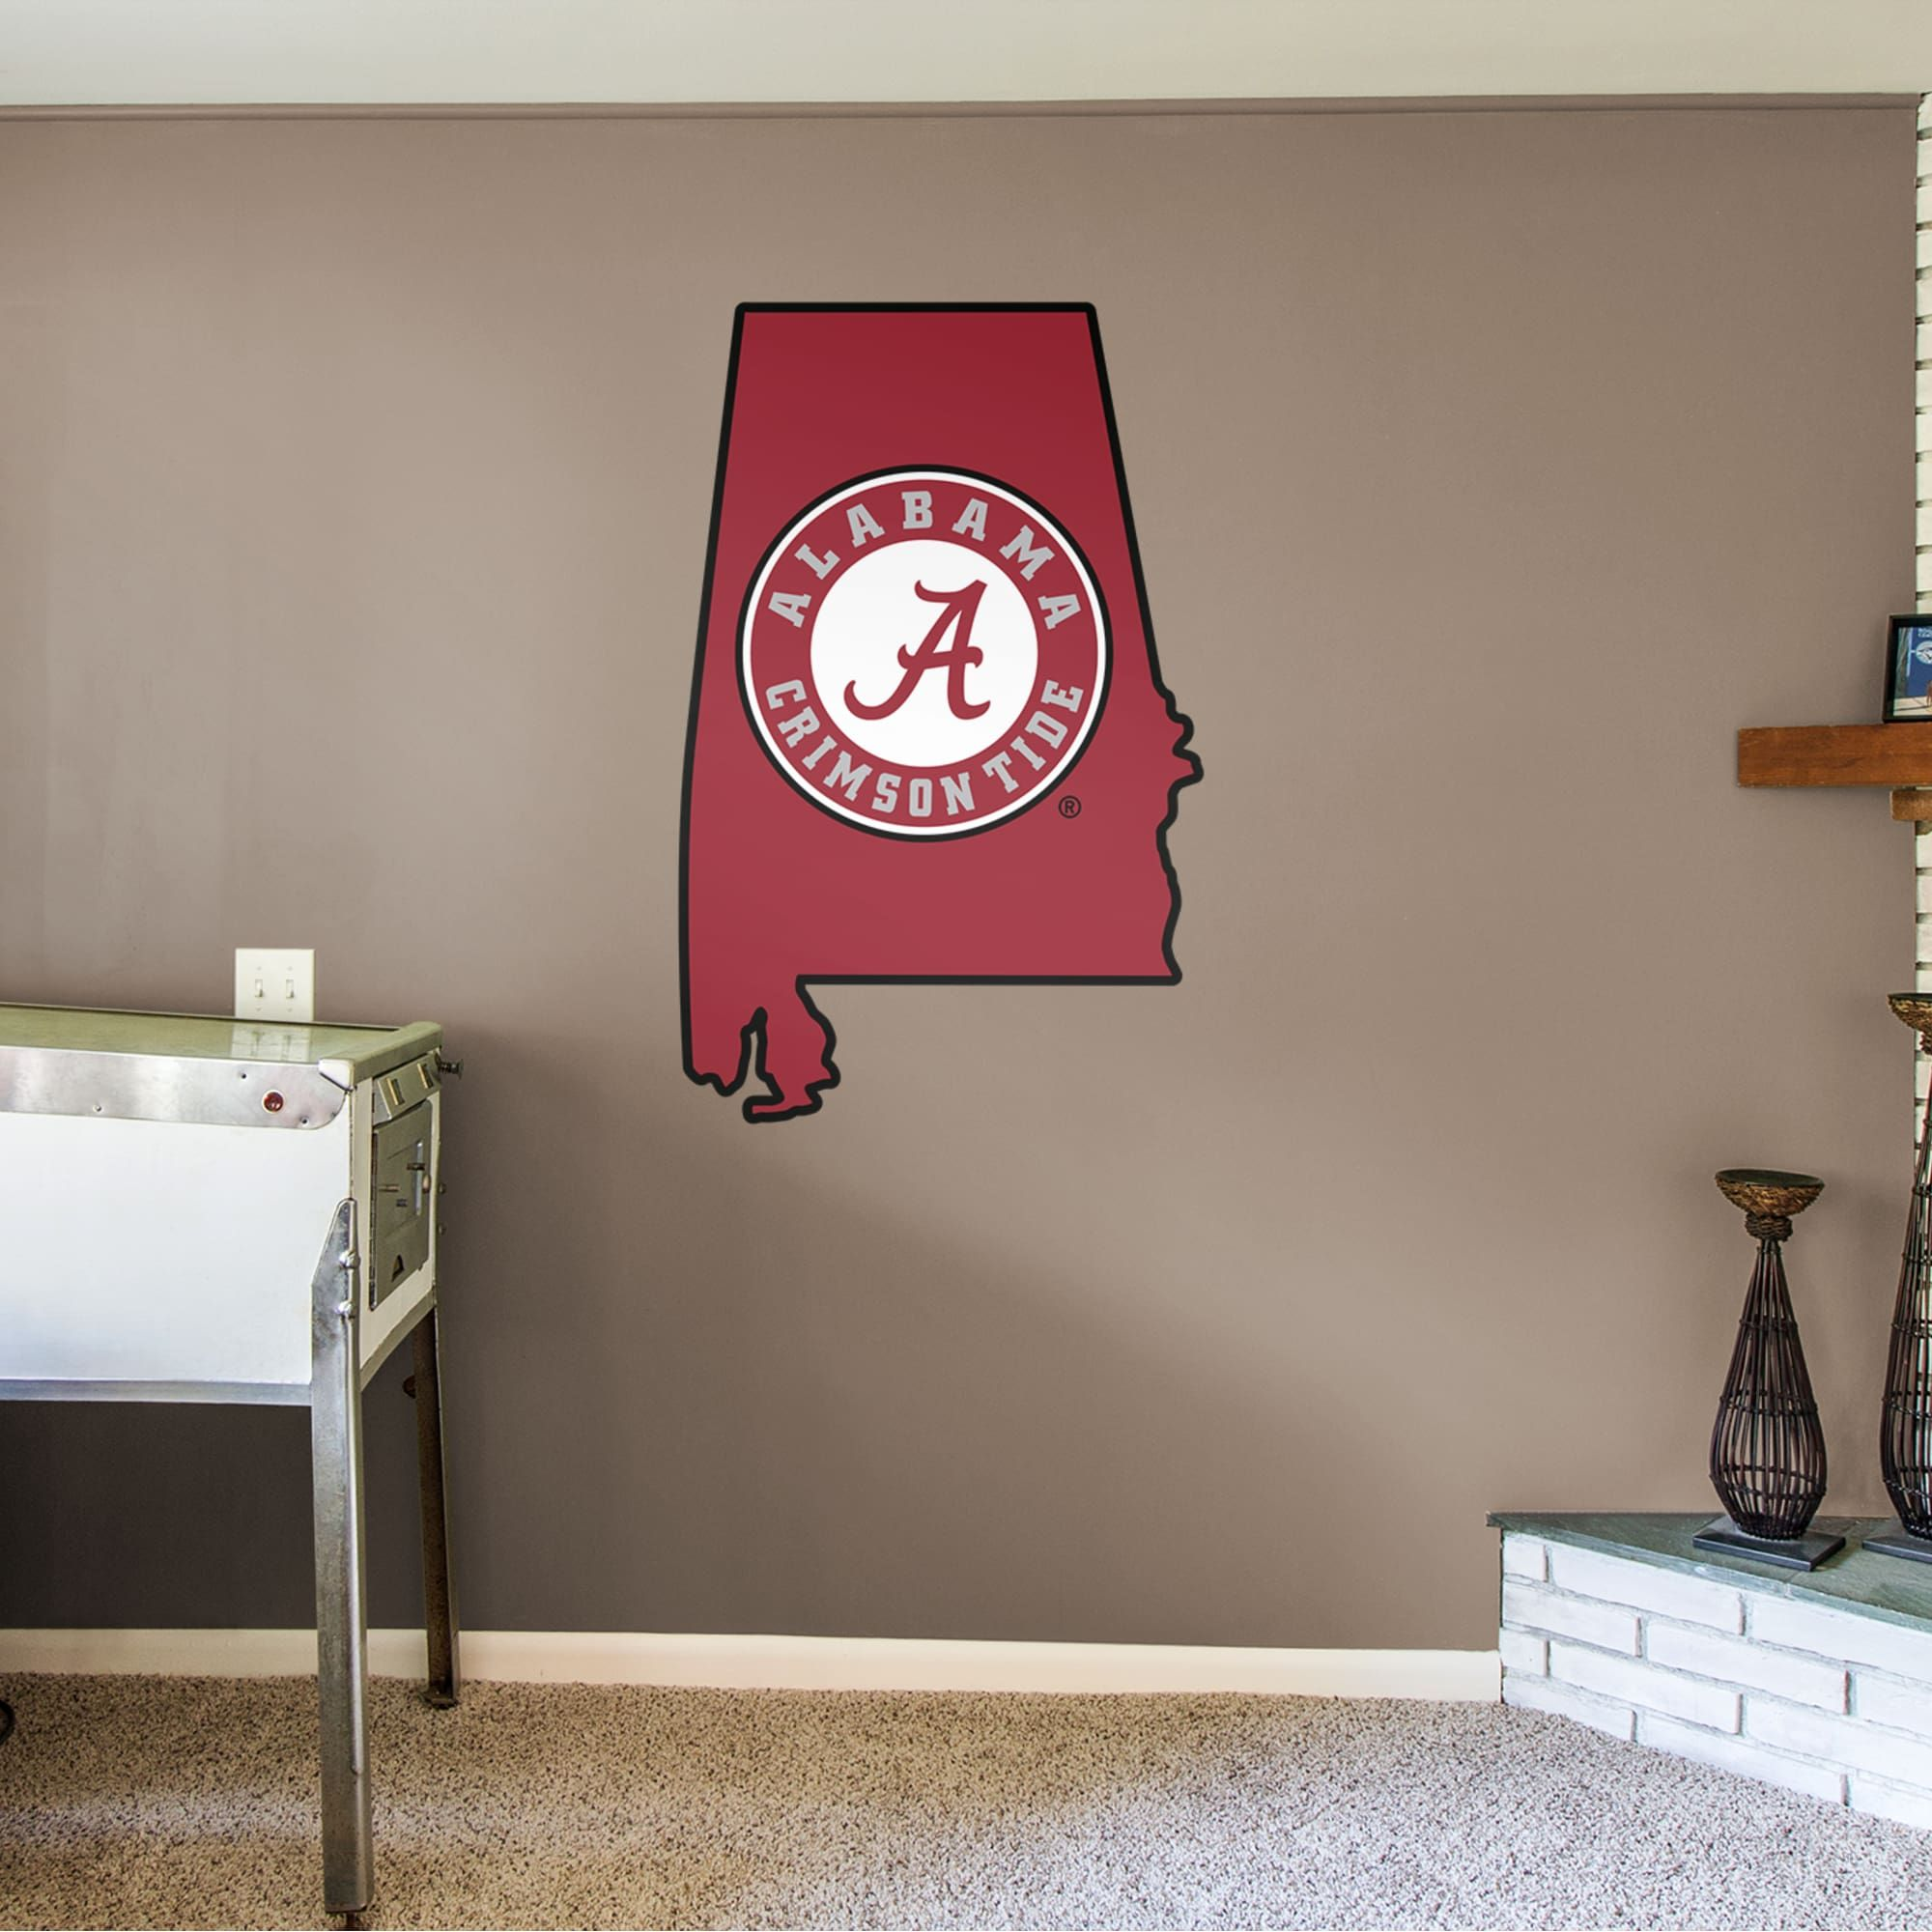 Alabama Crimson Tide State Of Alabama Giant Officially Licensed Removable Wall Decal In 2019 Alabama Crimson Tide Logo Alabama Crimson Tide Removable Wall Decals